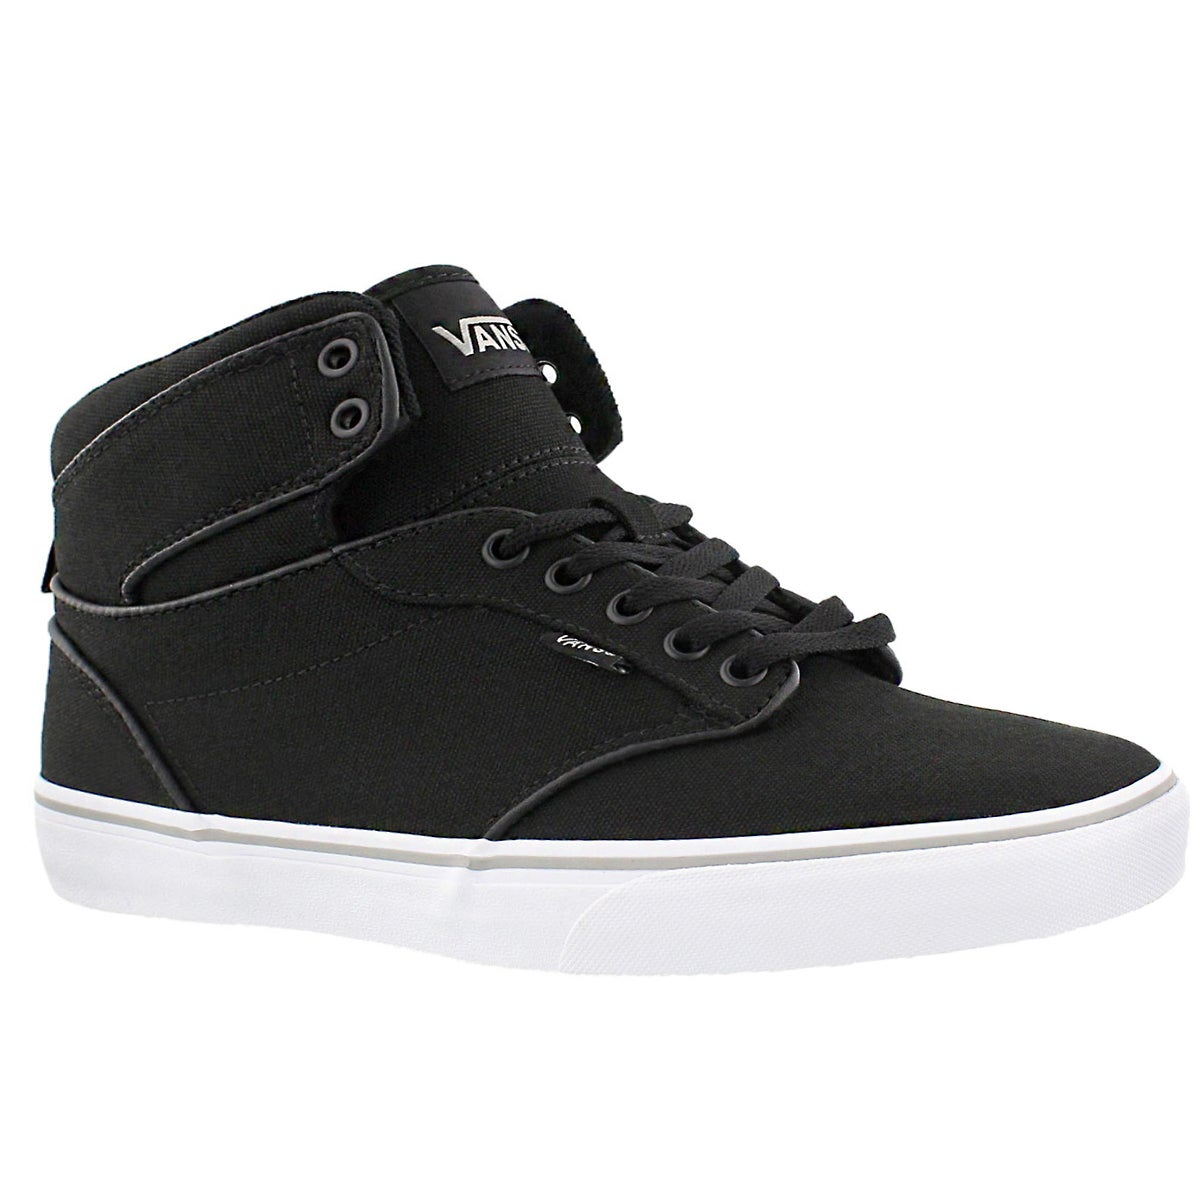 Men's ATWOOD HI black sneakers